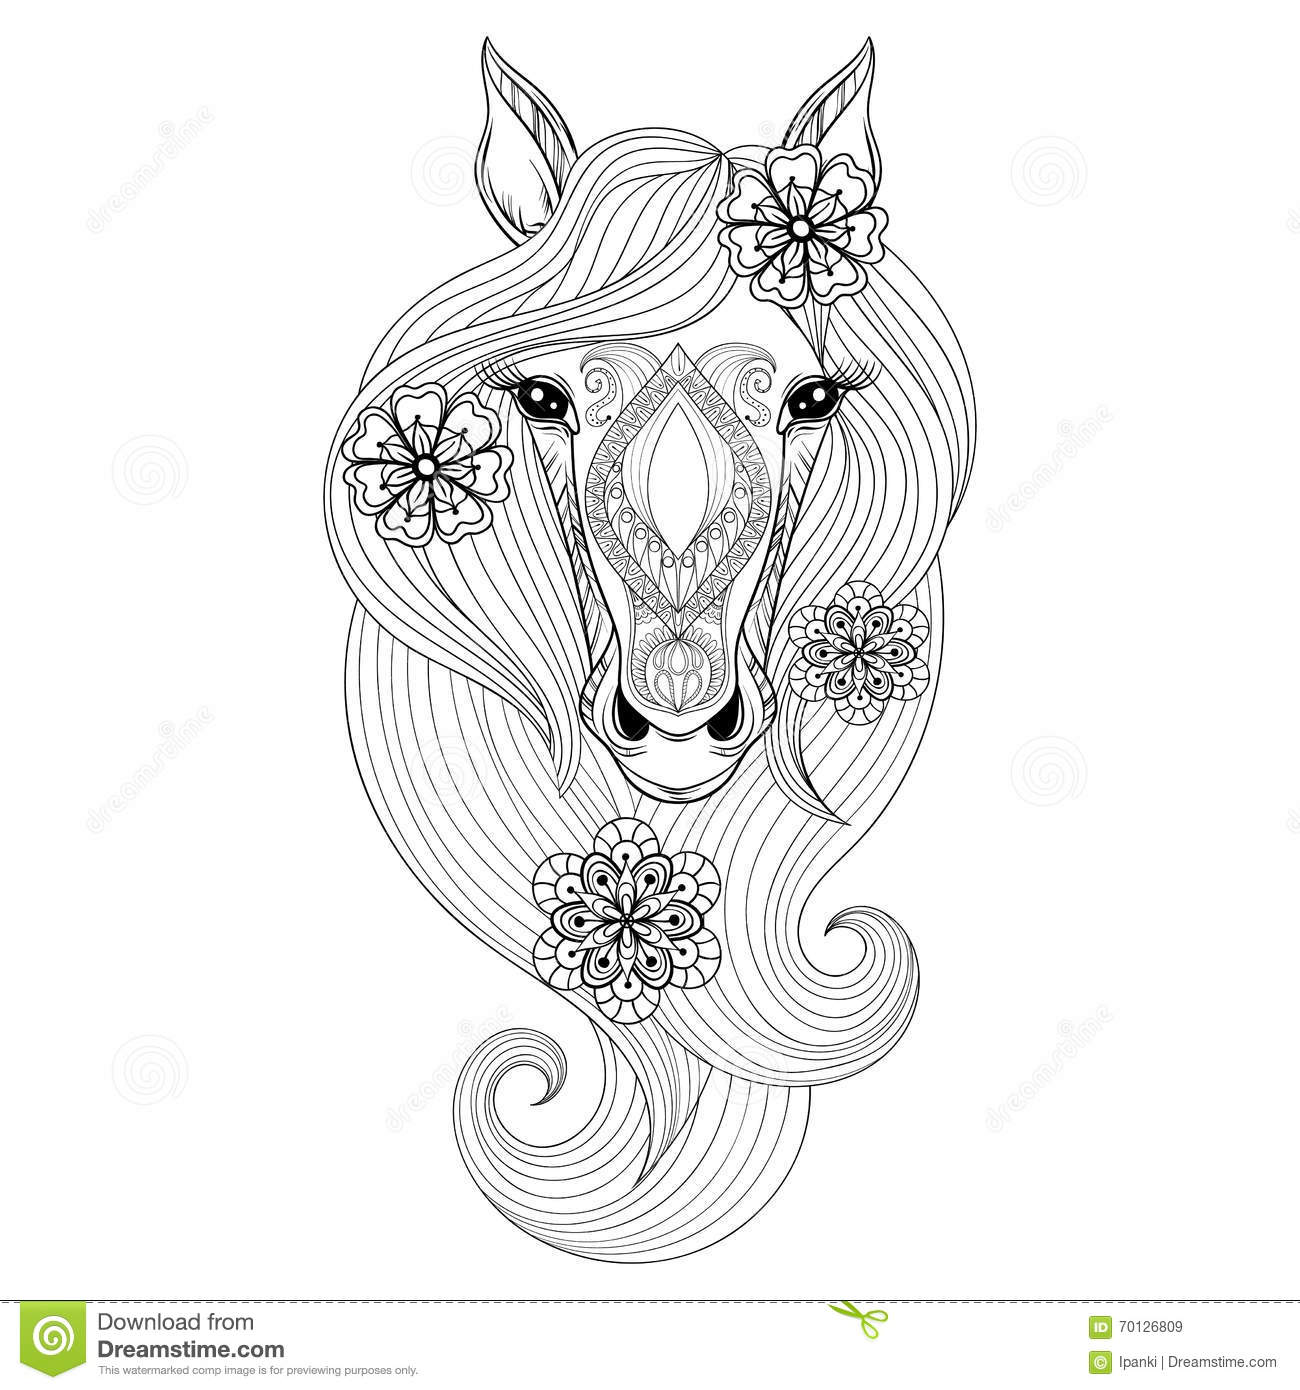 patterned head horse stock illustrations u2013 55 patterned head horse